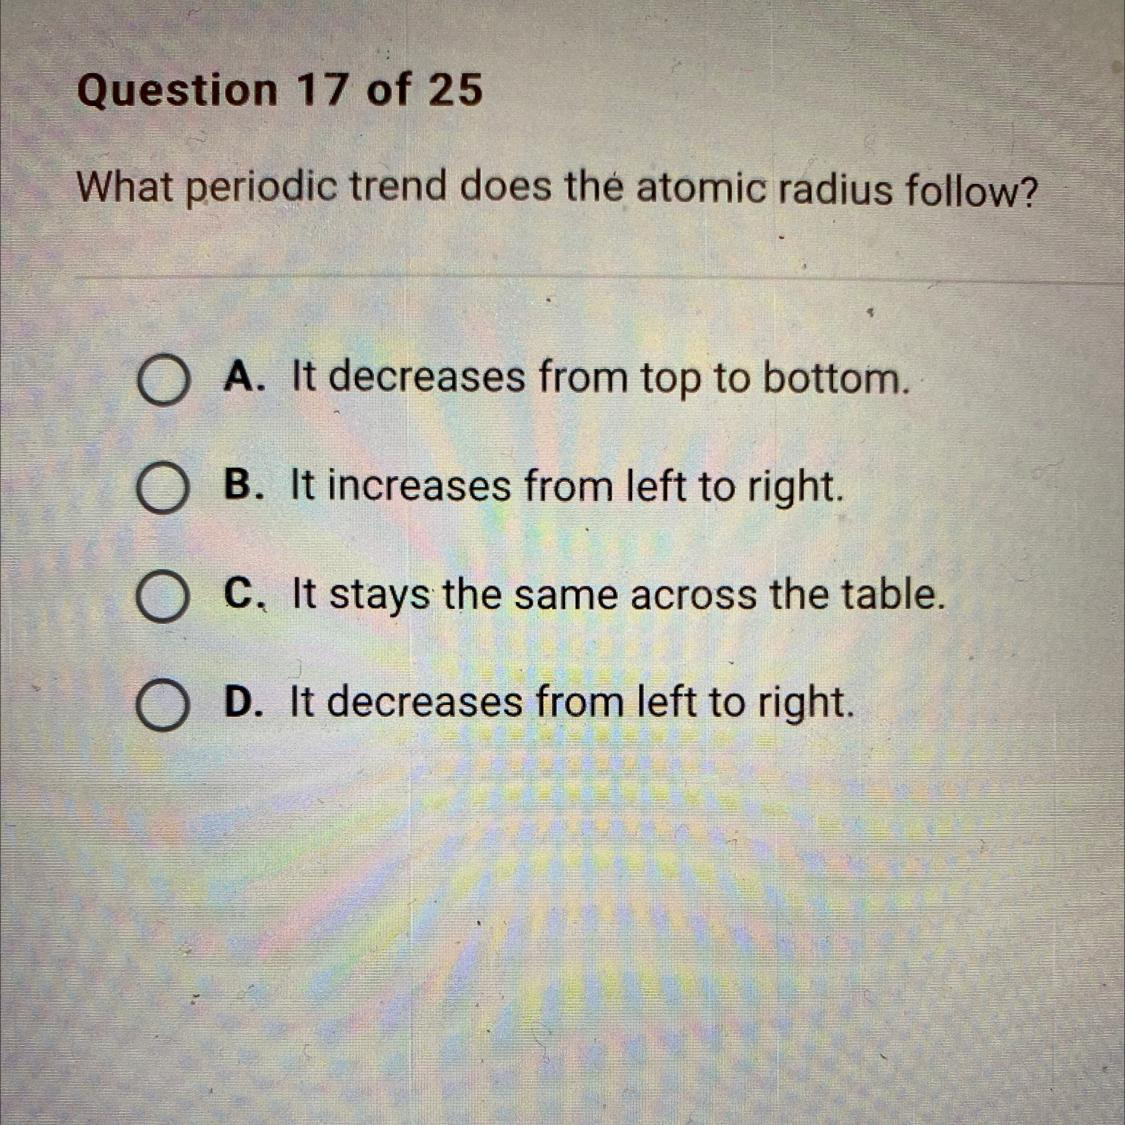 What Periodic Trend Does The Atomic Radius Follow